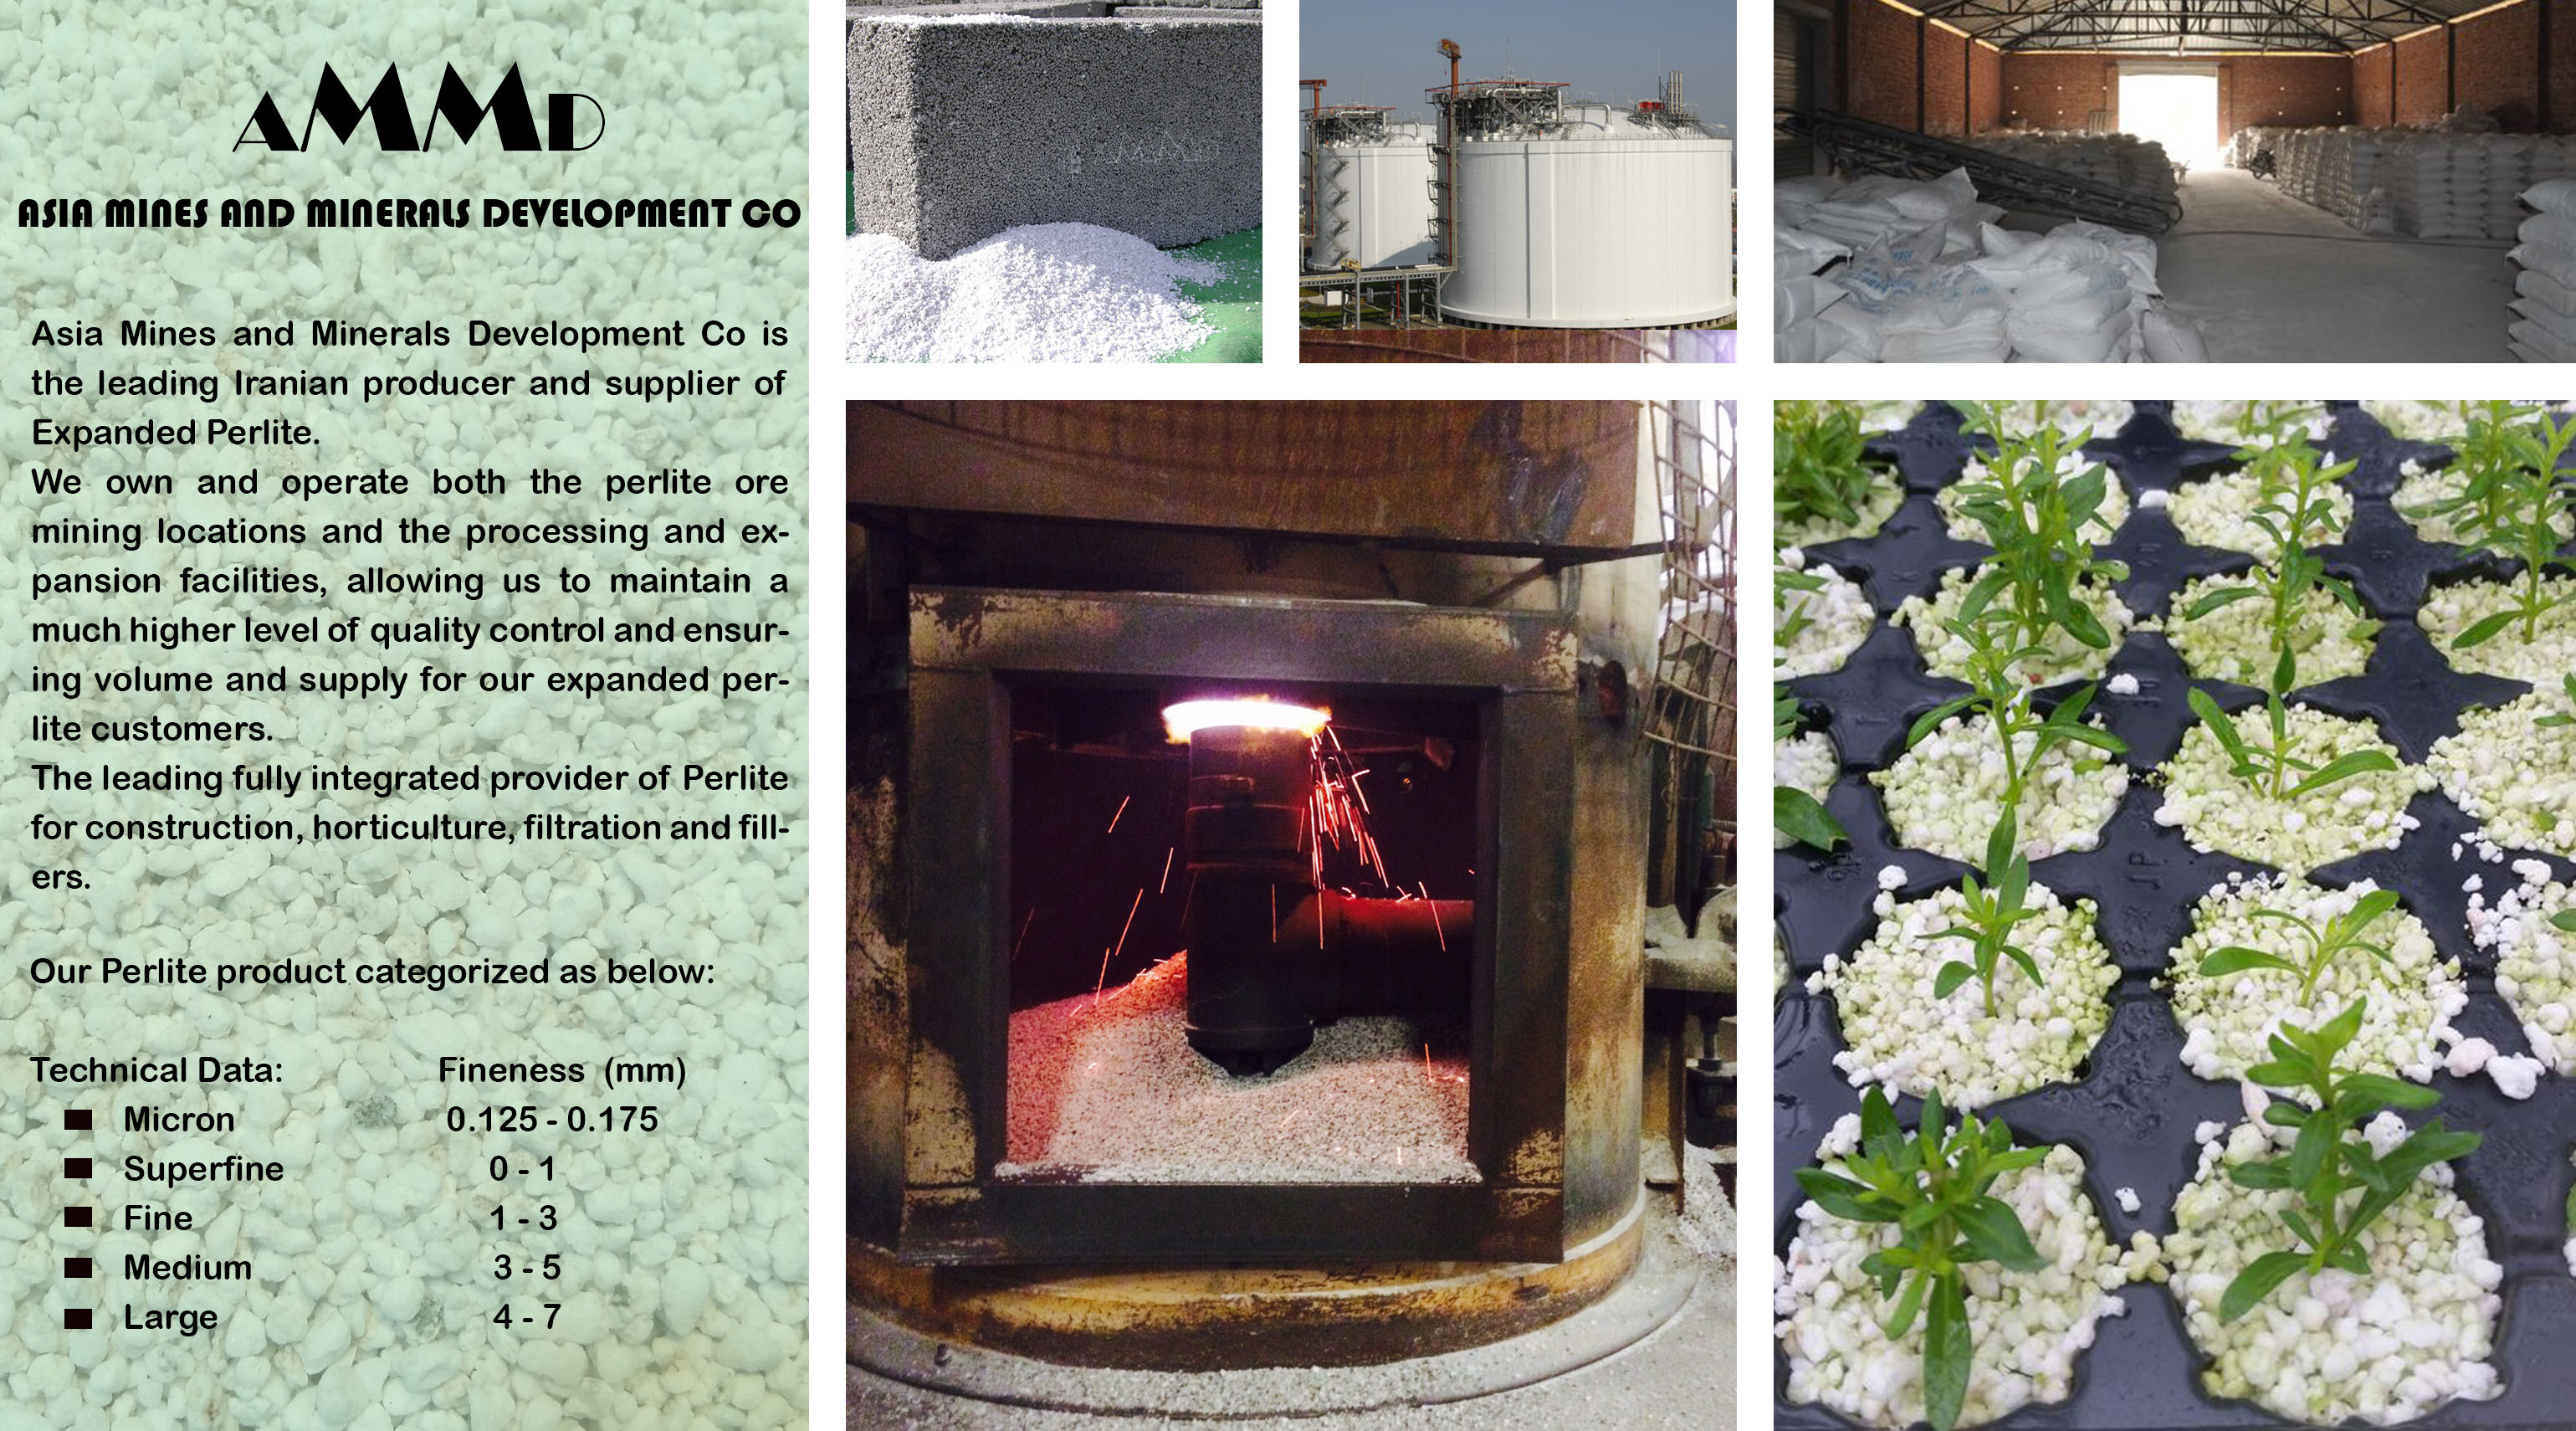 perlite producer and supplier has own mine and manufacture in iran export perlite expanded to asia turkey iraq uae saudi arabia india china